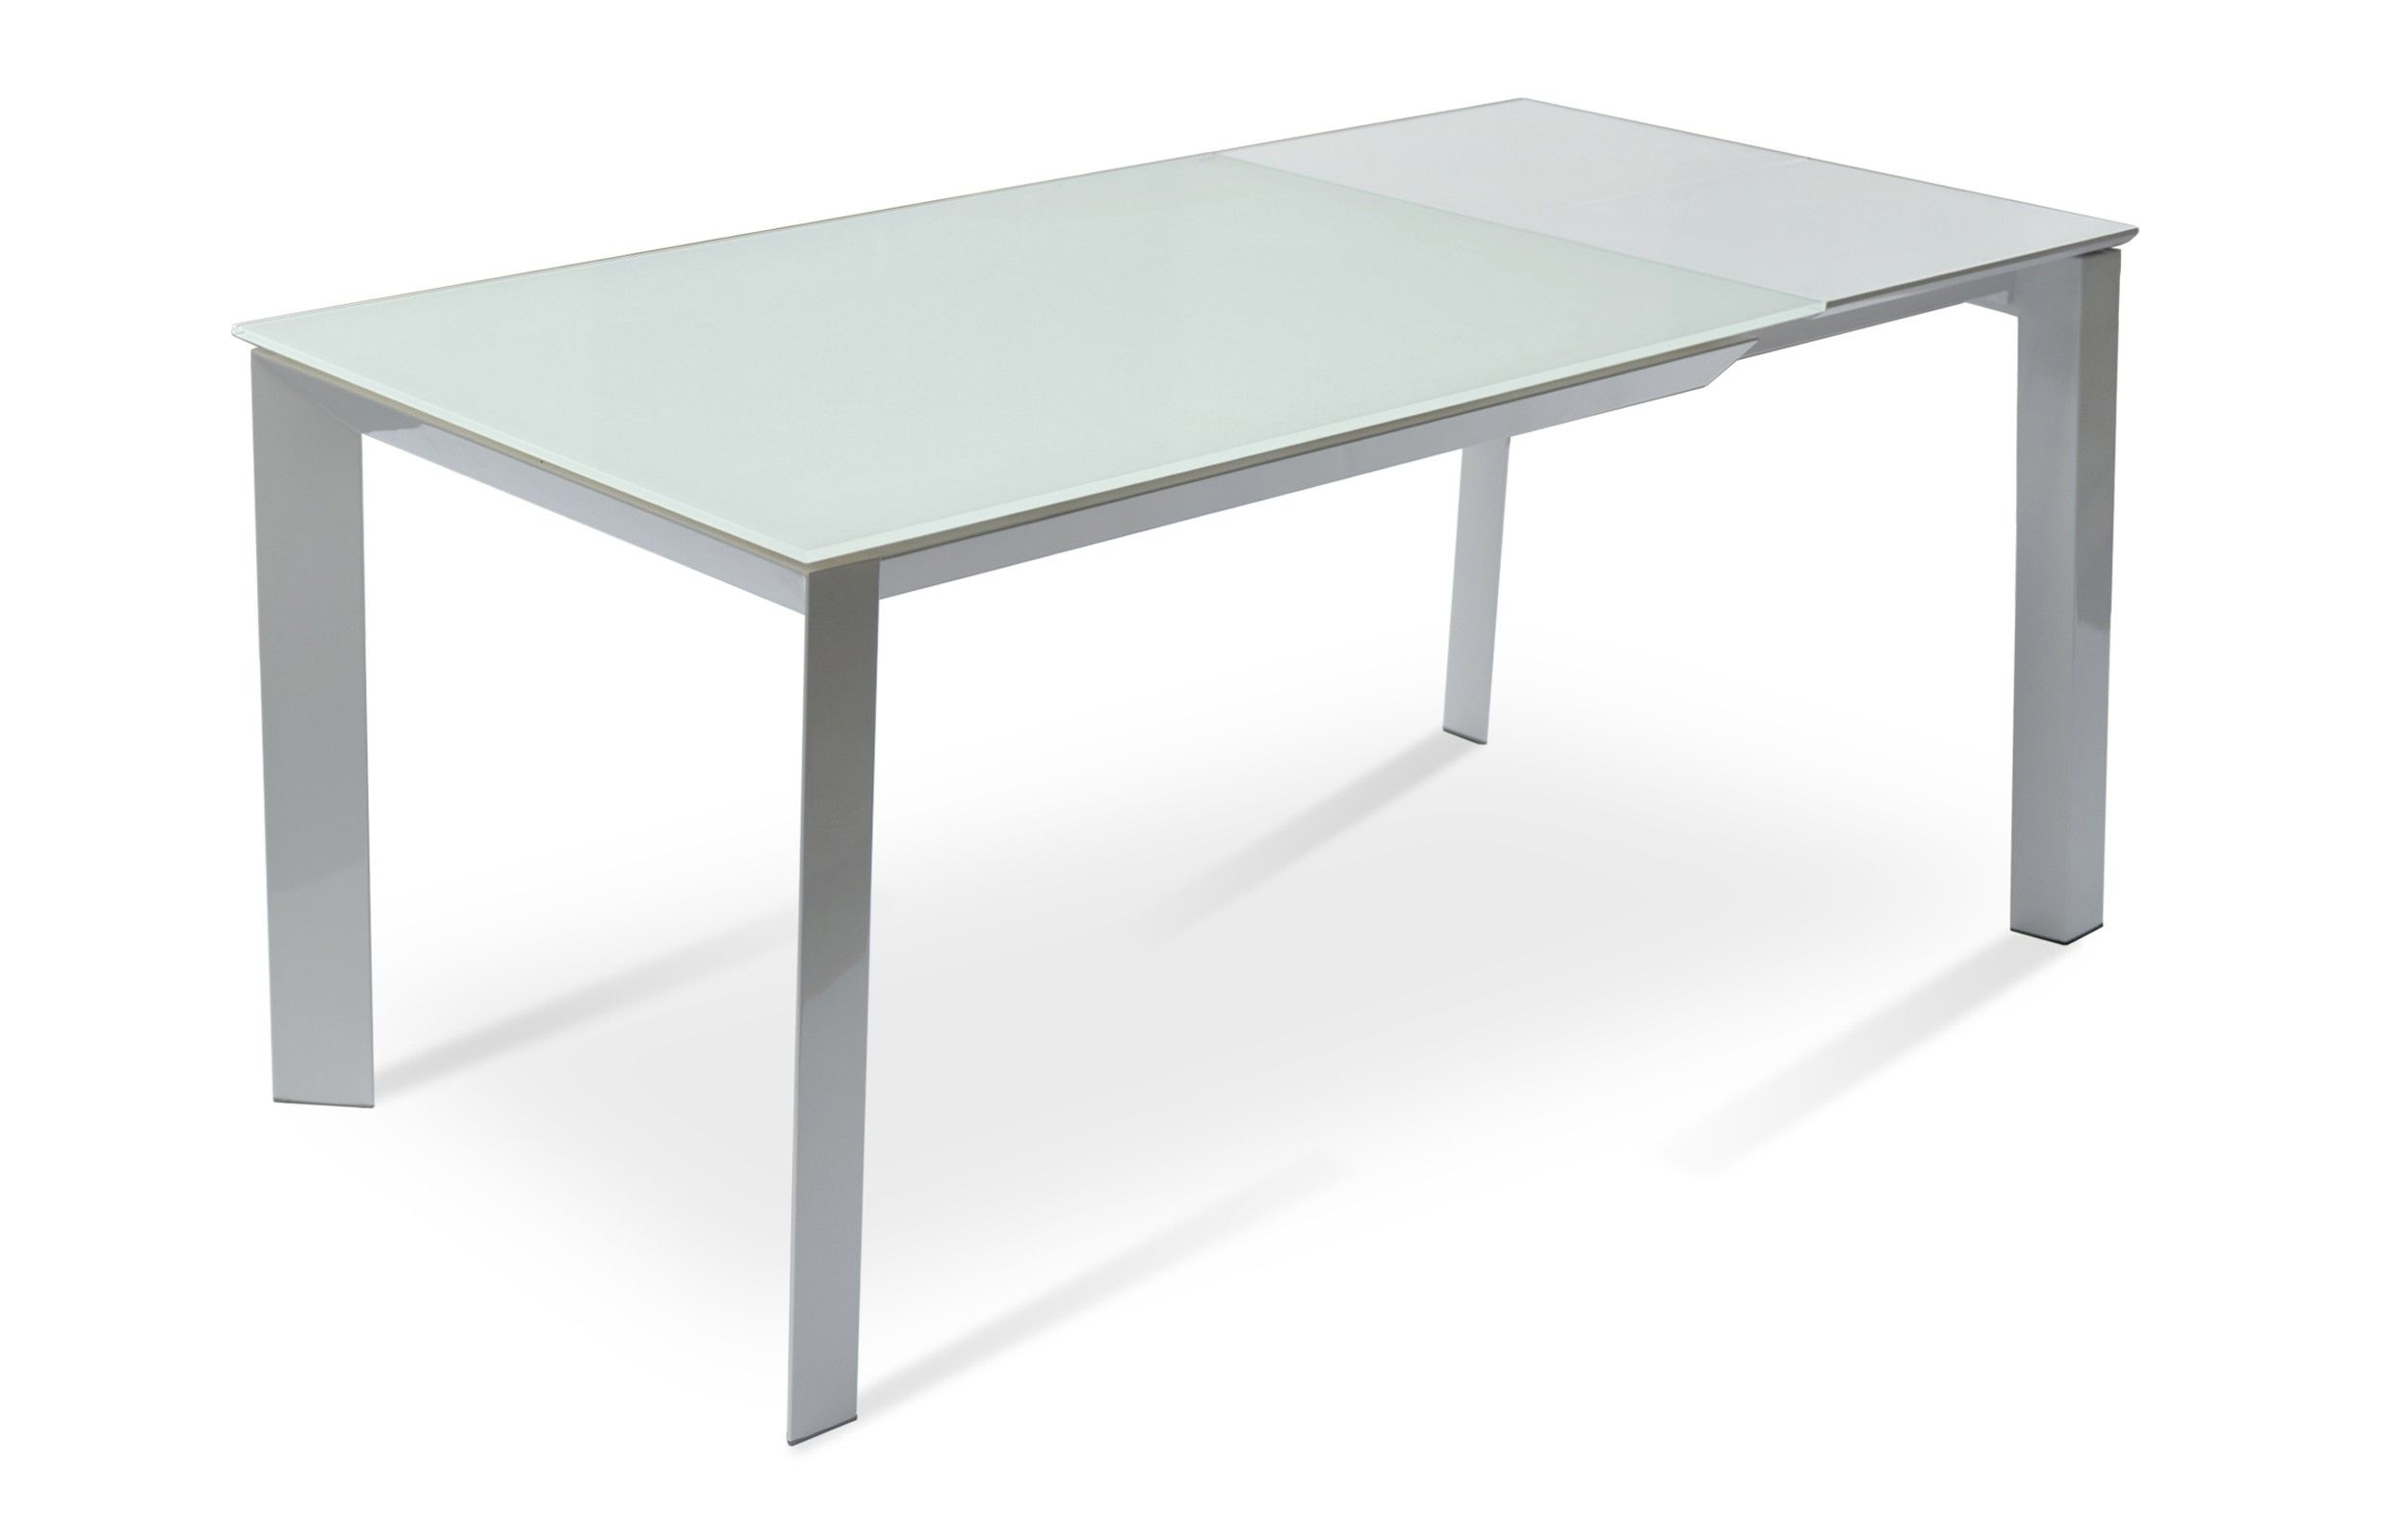 Milano Glass Extendable Dining Table | Dining Area | Pinterest With Regard To Most Current Ina Matte Black 60 Inch Counter Tables With Frosted Glass (Photo 5 of 20)